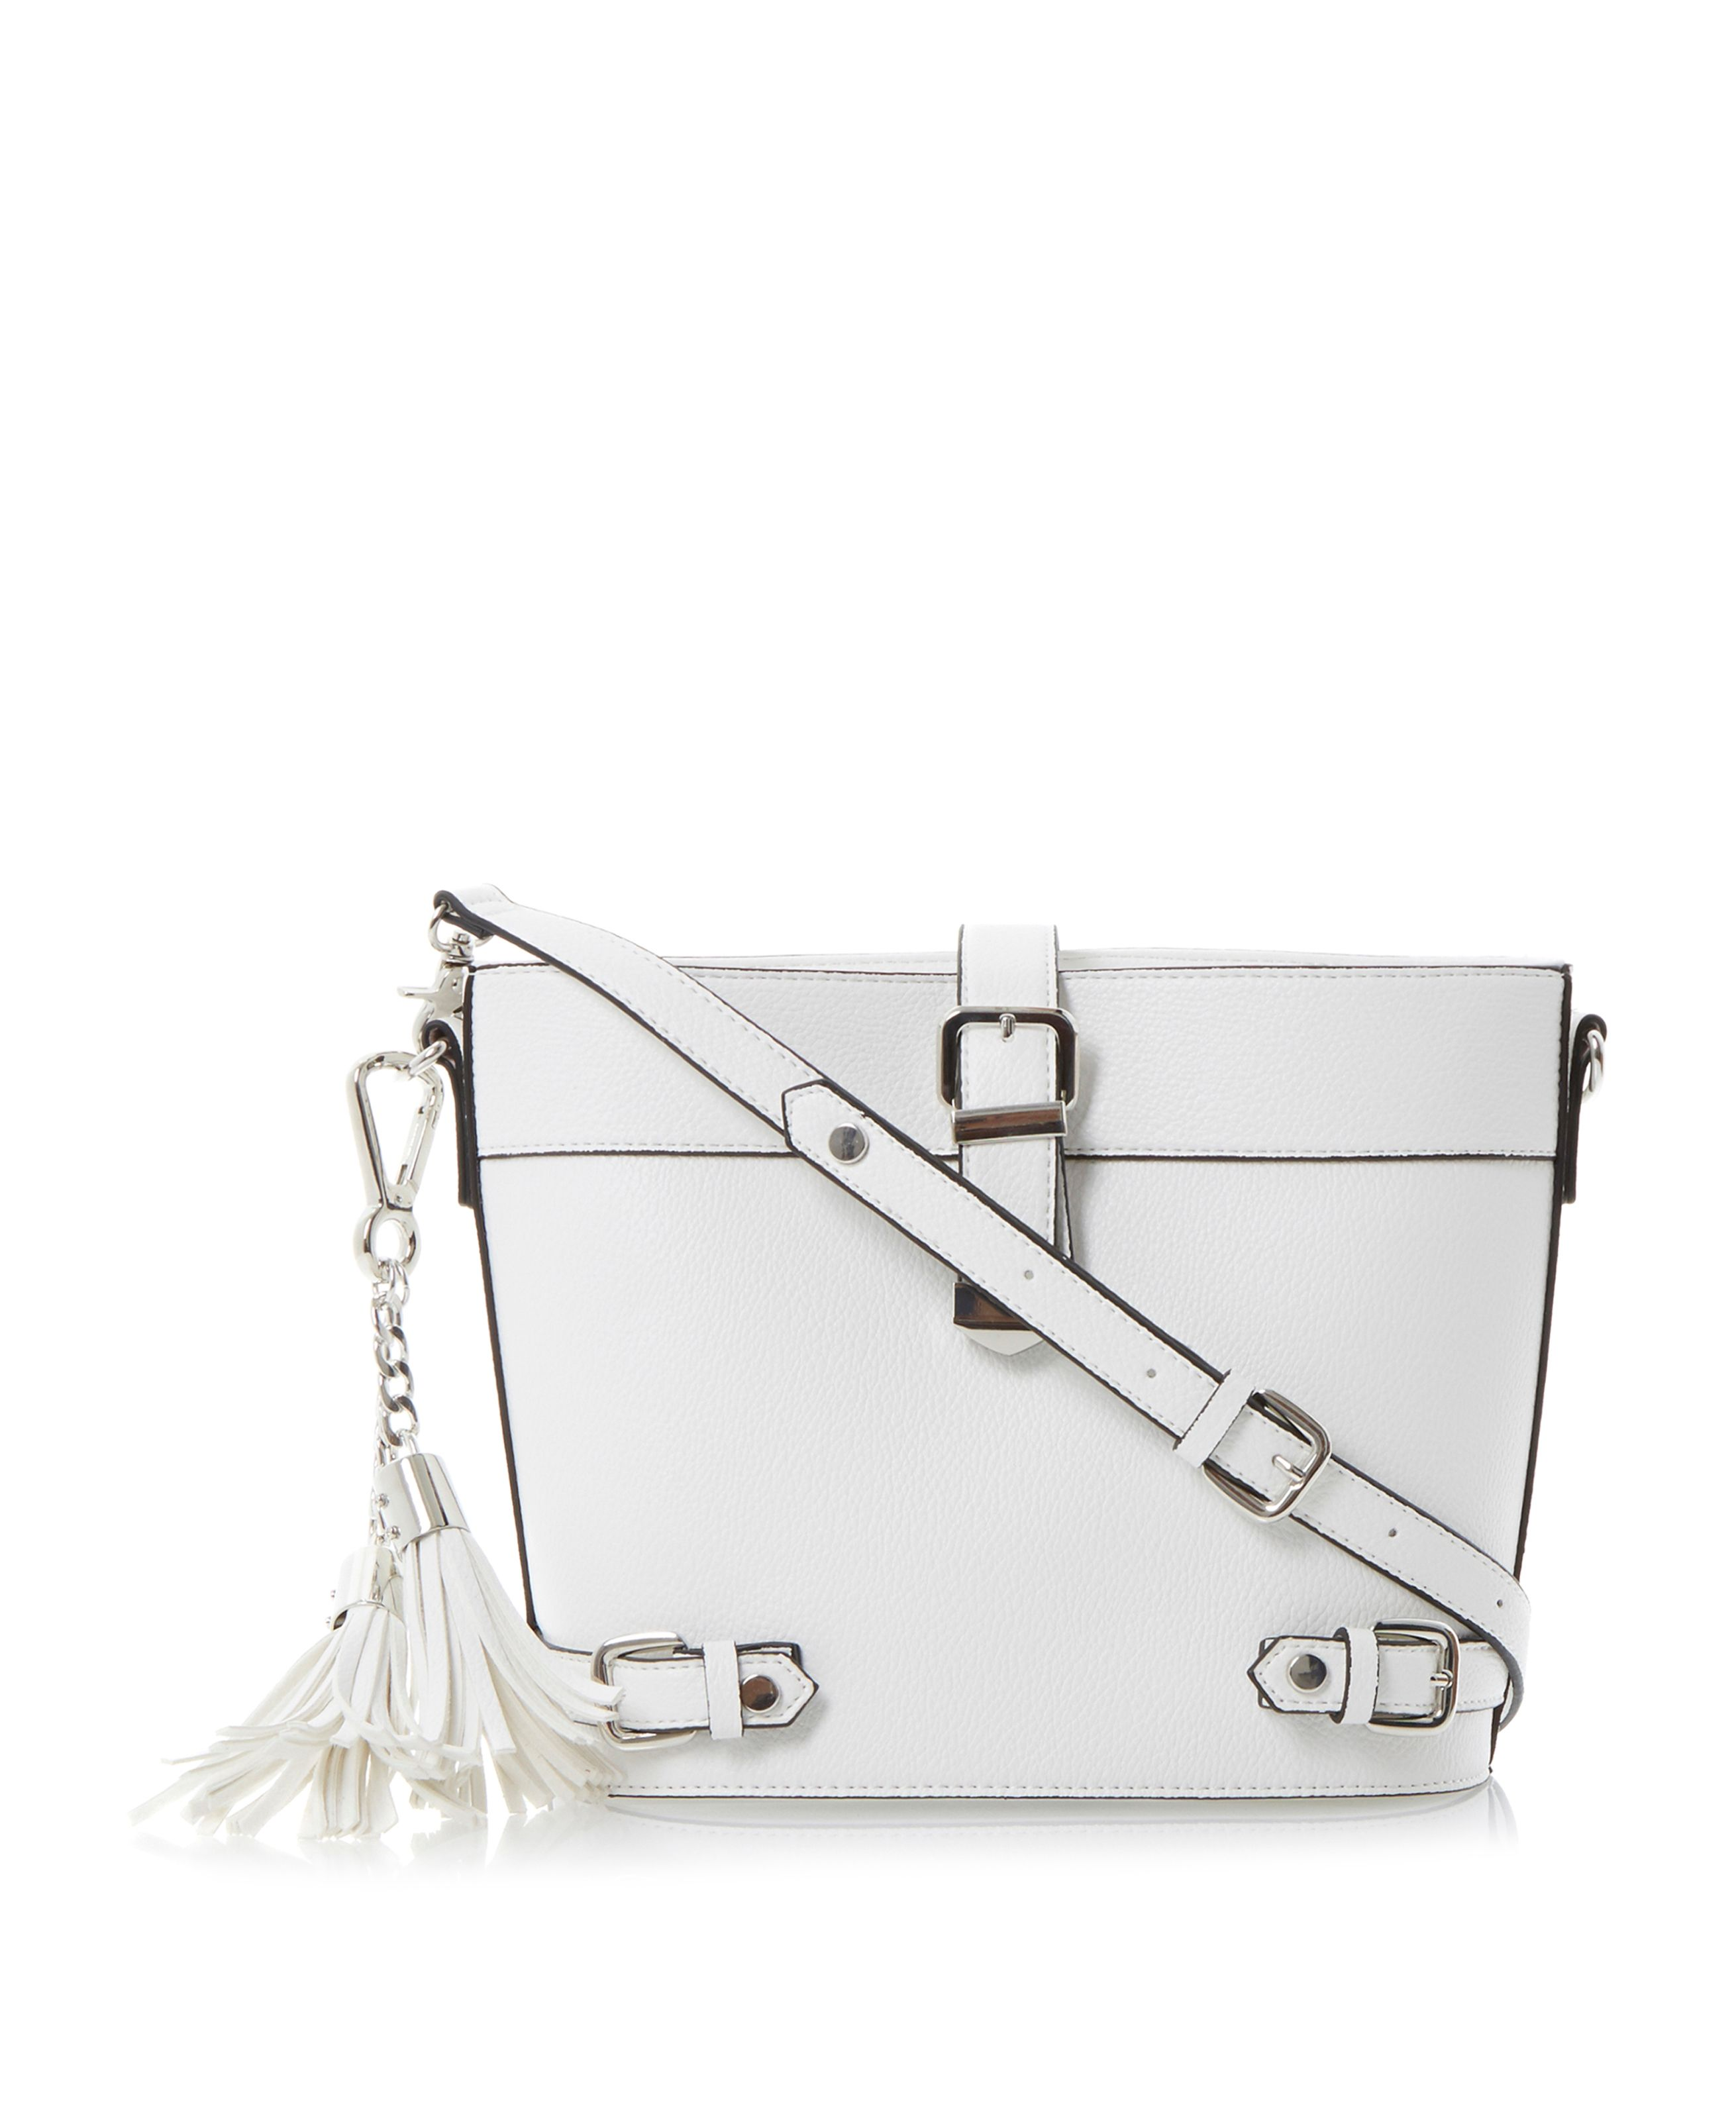 Lyla buckle and tassel trim cross body bag